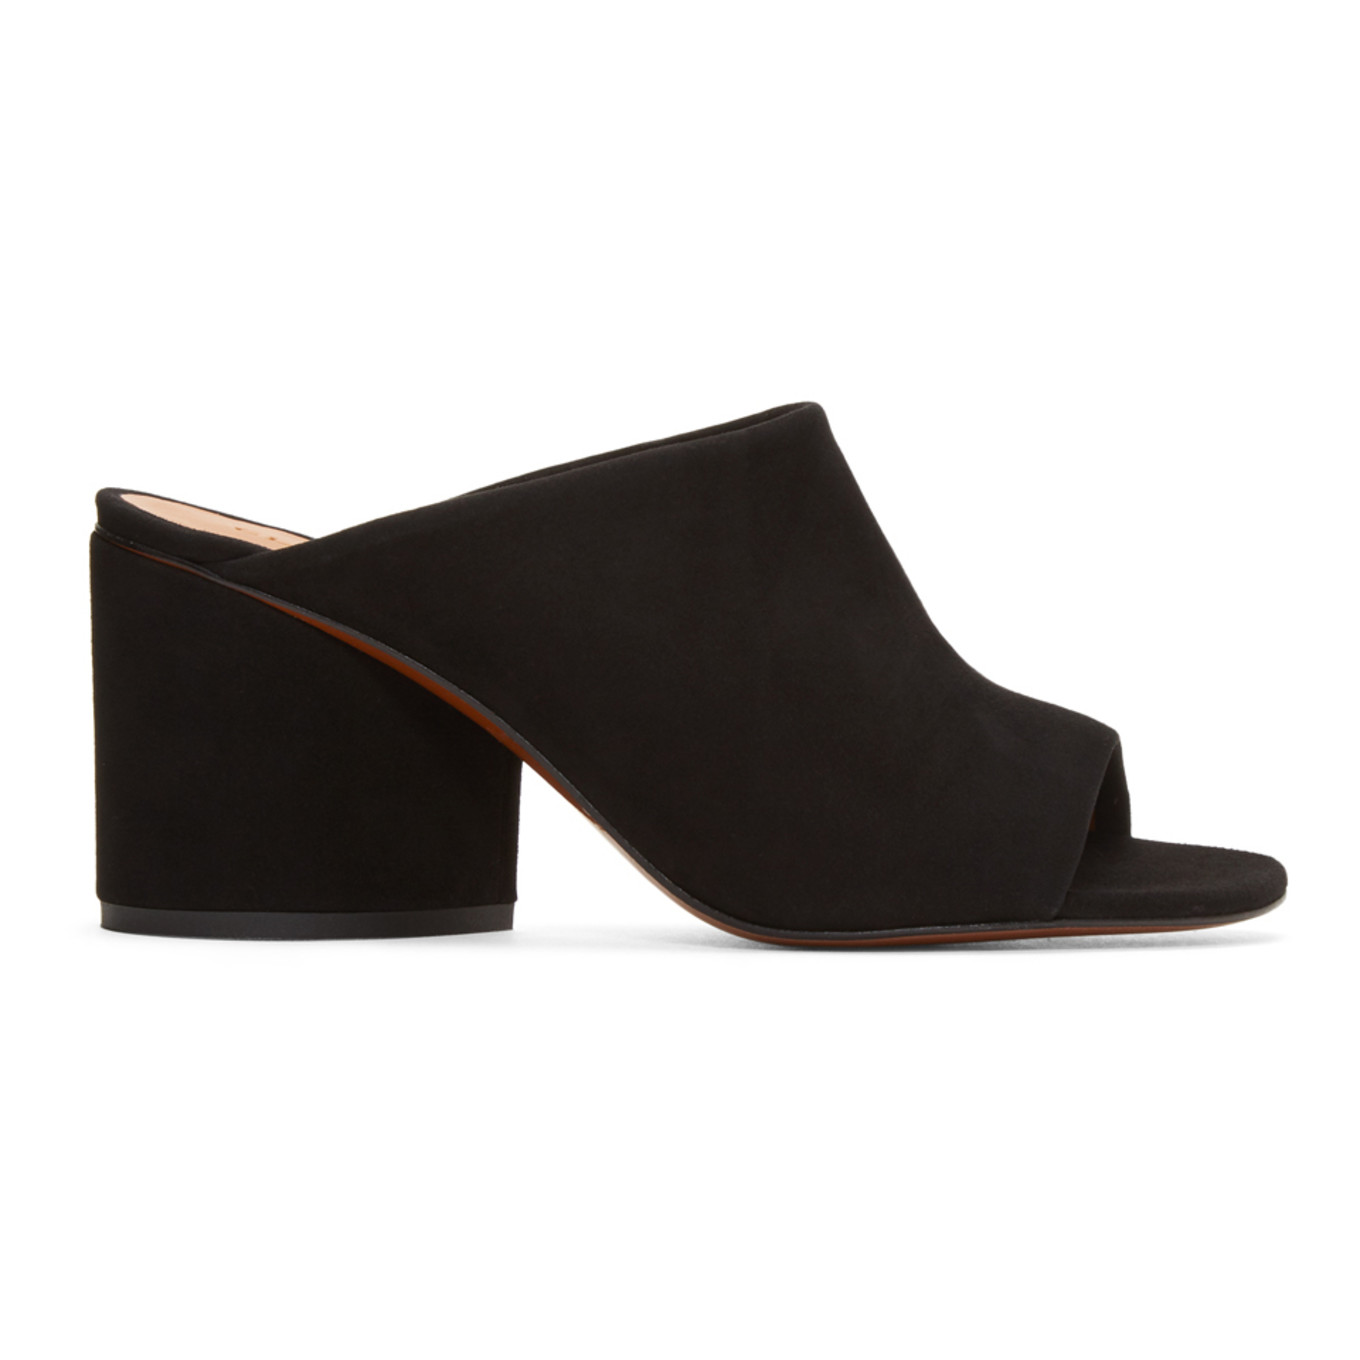 Black Suede Caren Mules by Clergerie